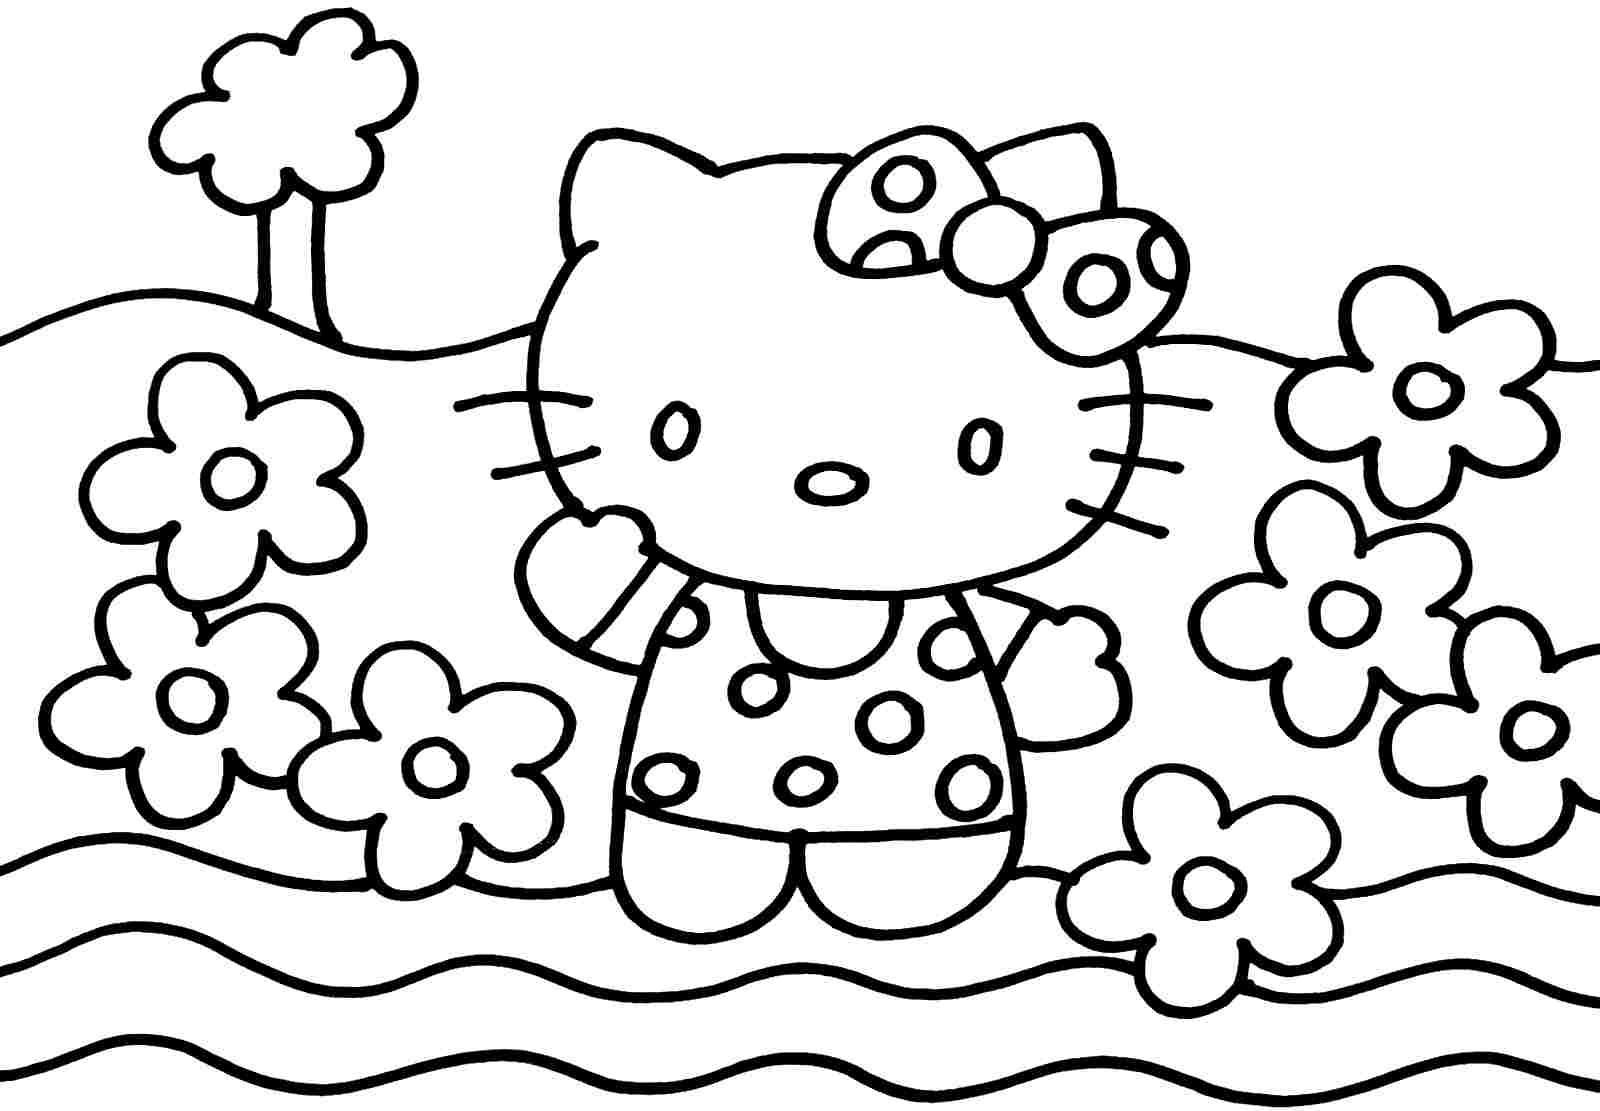 Free Online Coloring Pages Coloring Pages Coloring Pages ...